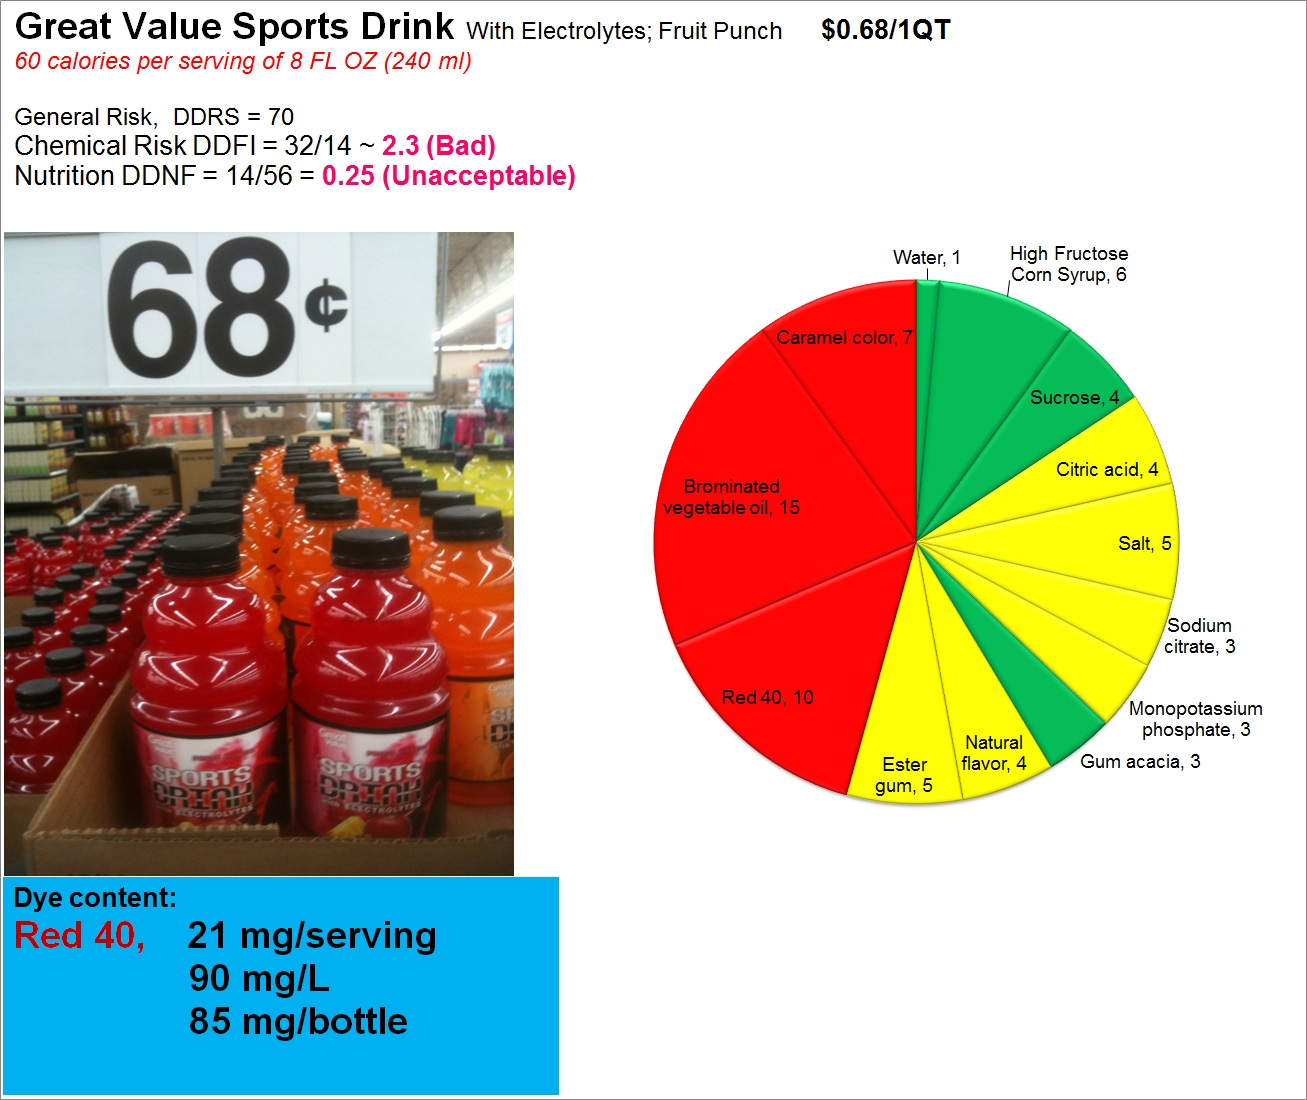 Great Value Sports Drink: Risk, Nutrition and Dye Content